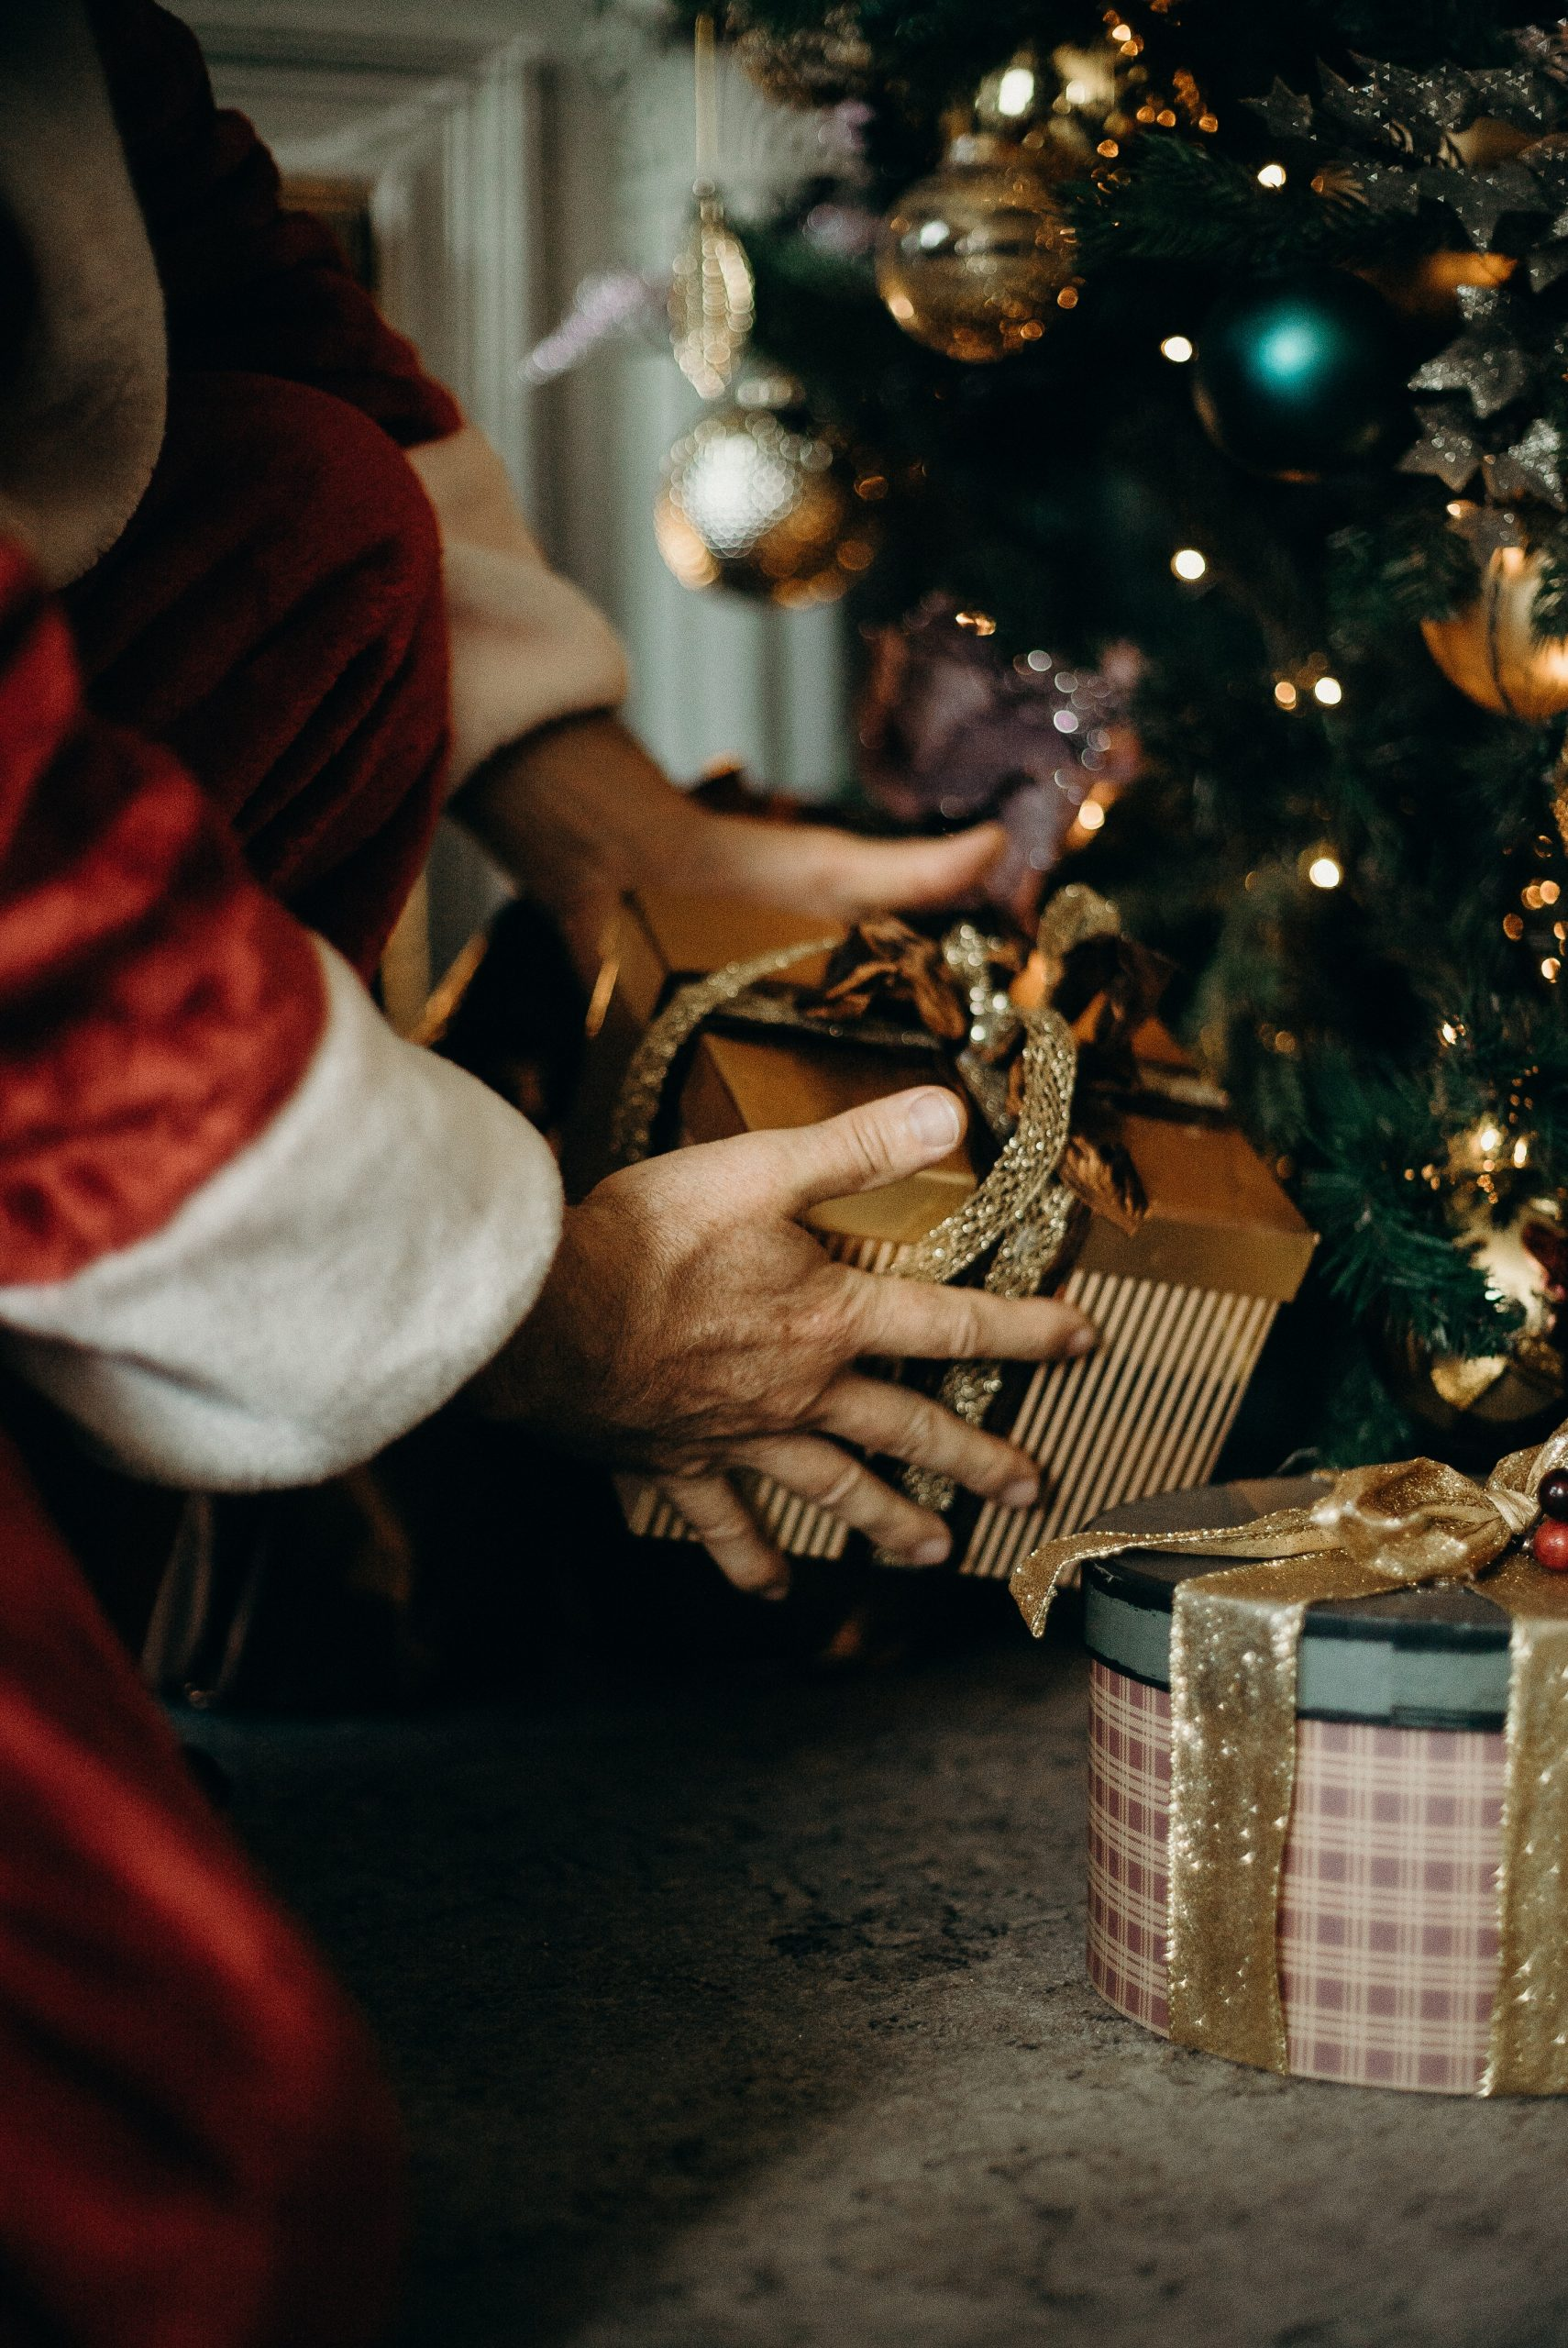 Person Wearing Santa Costume Holding Gold Gift Box